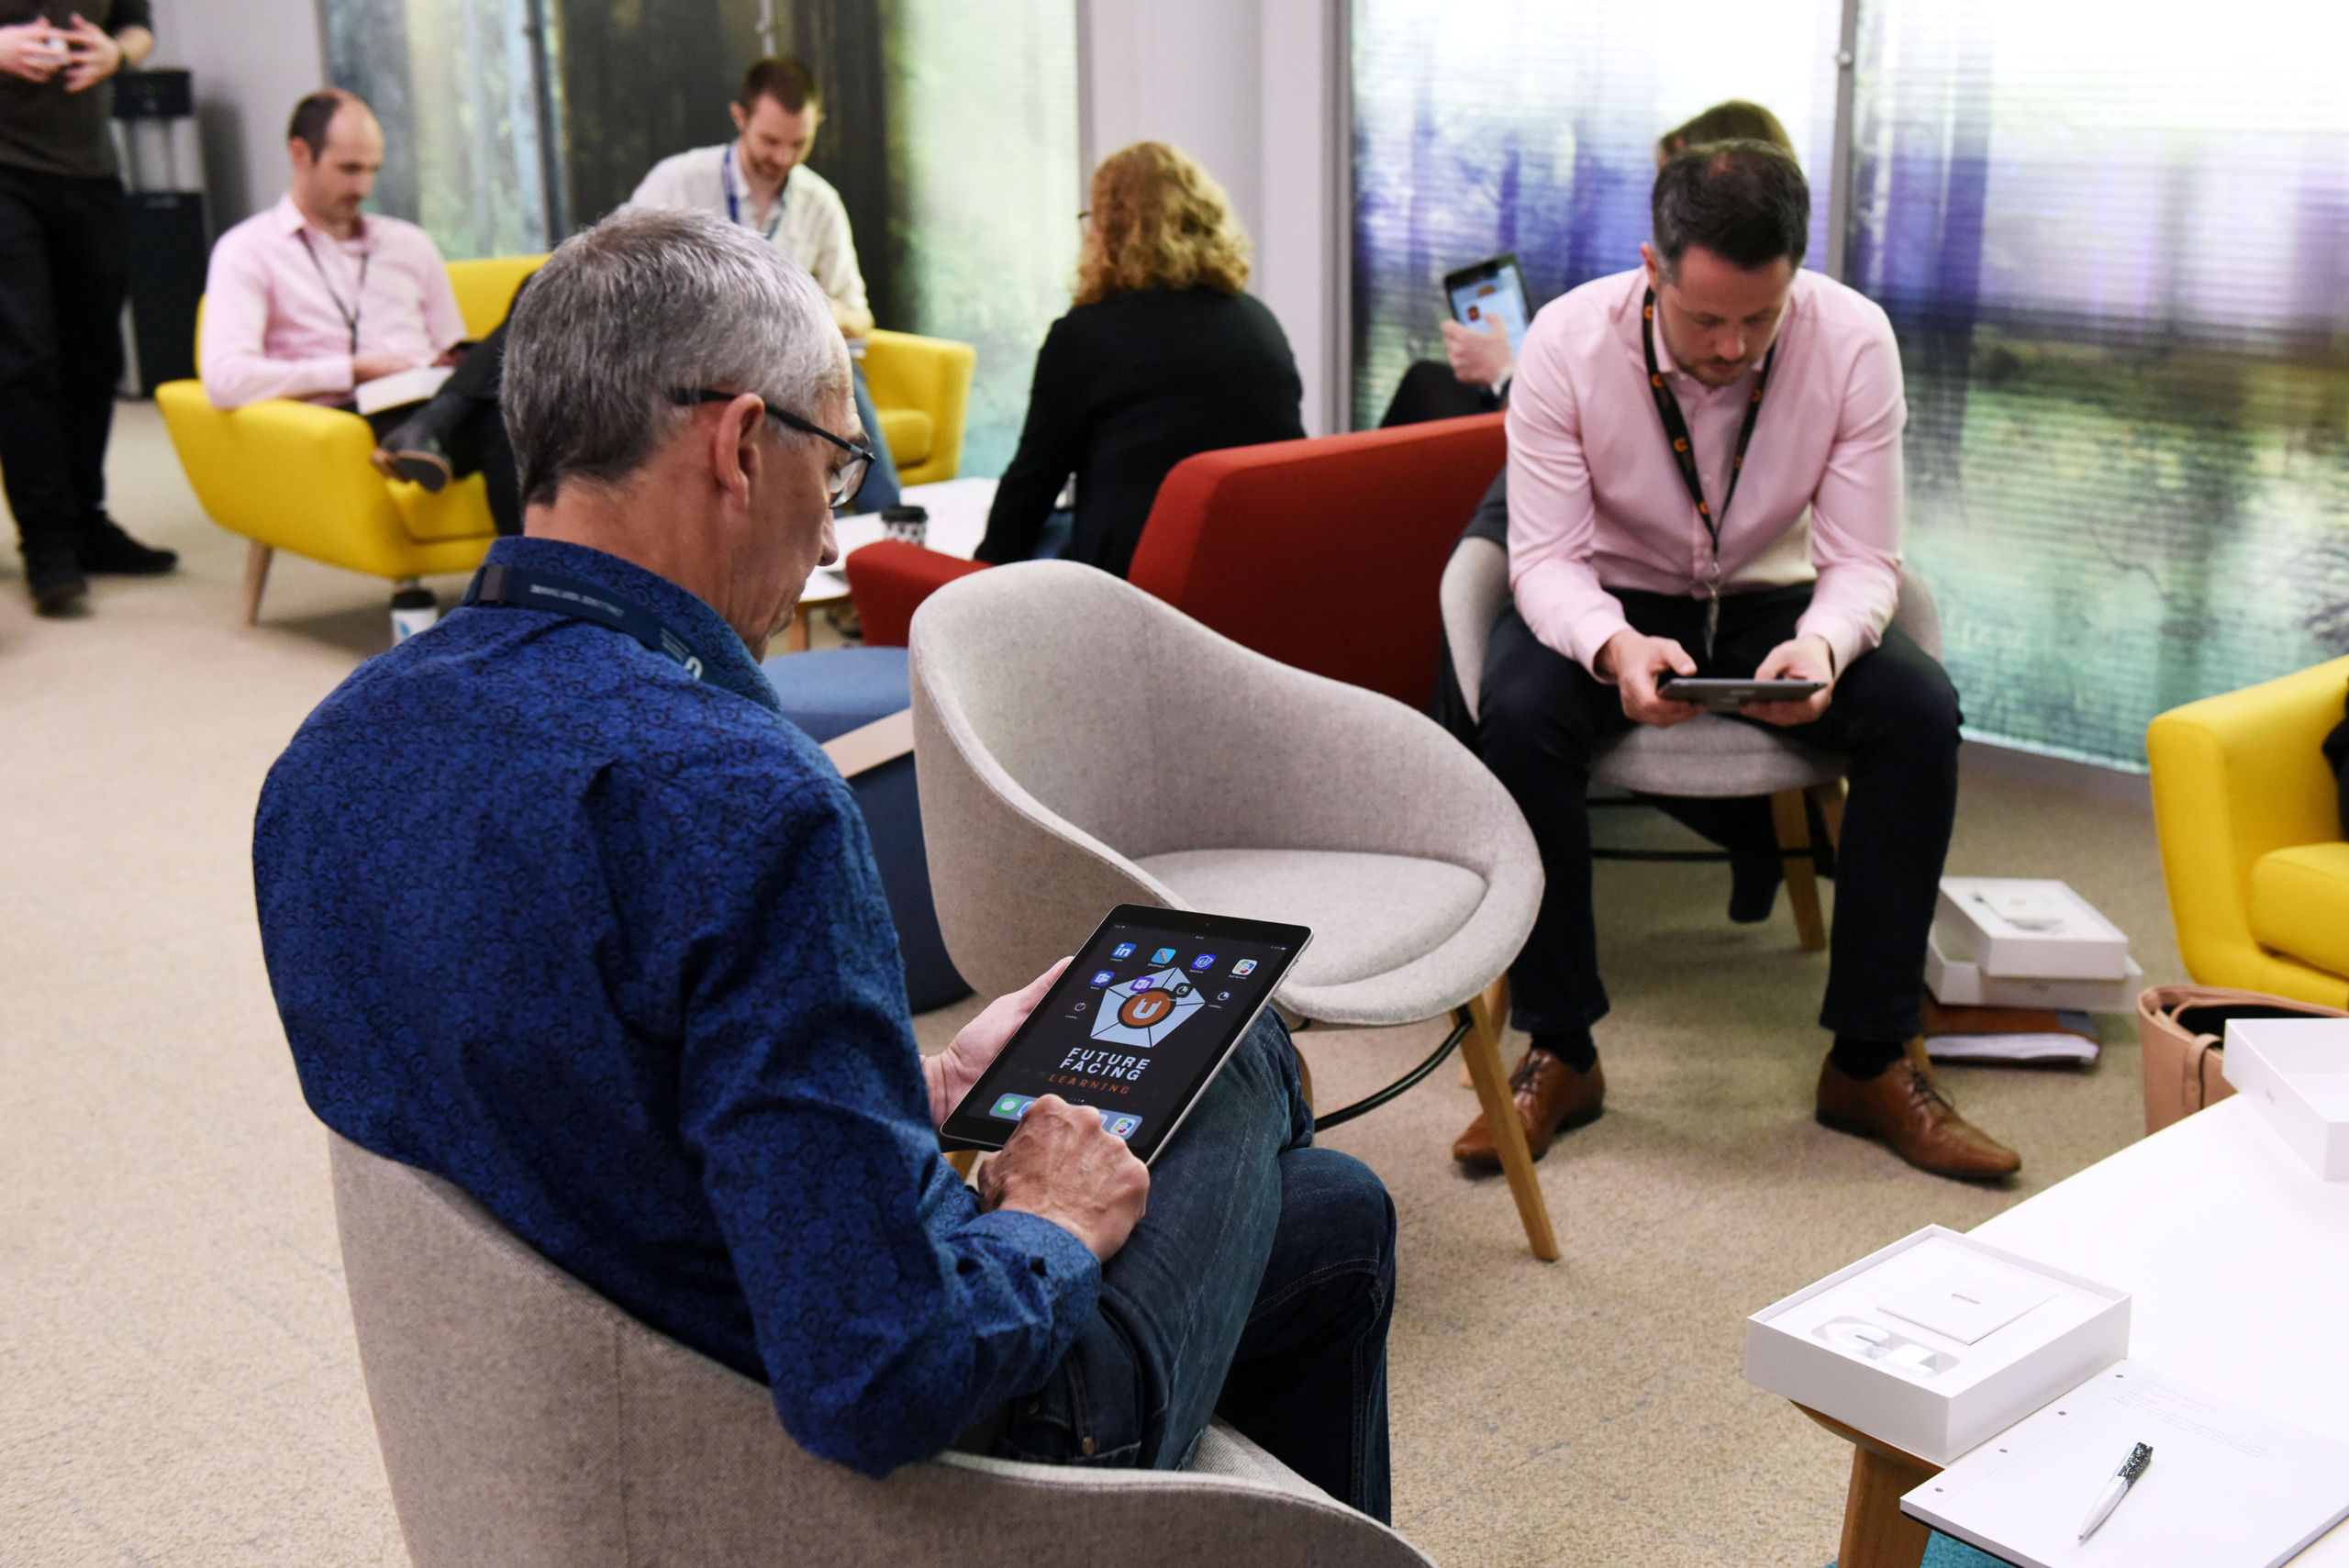 Man sat in a chair using the future facing learning platform